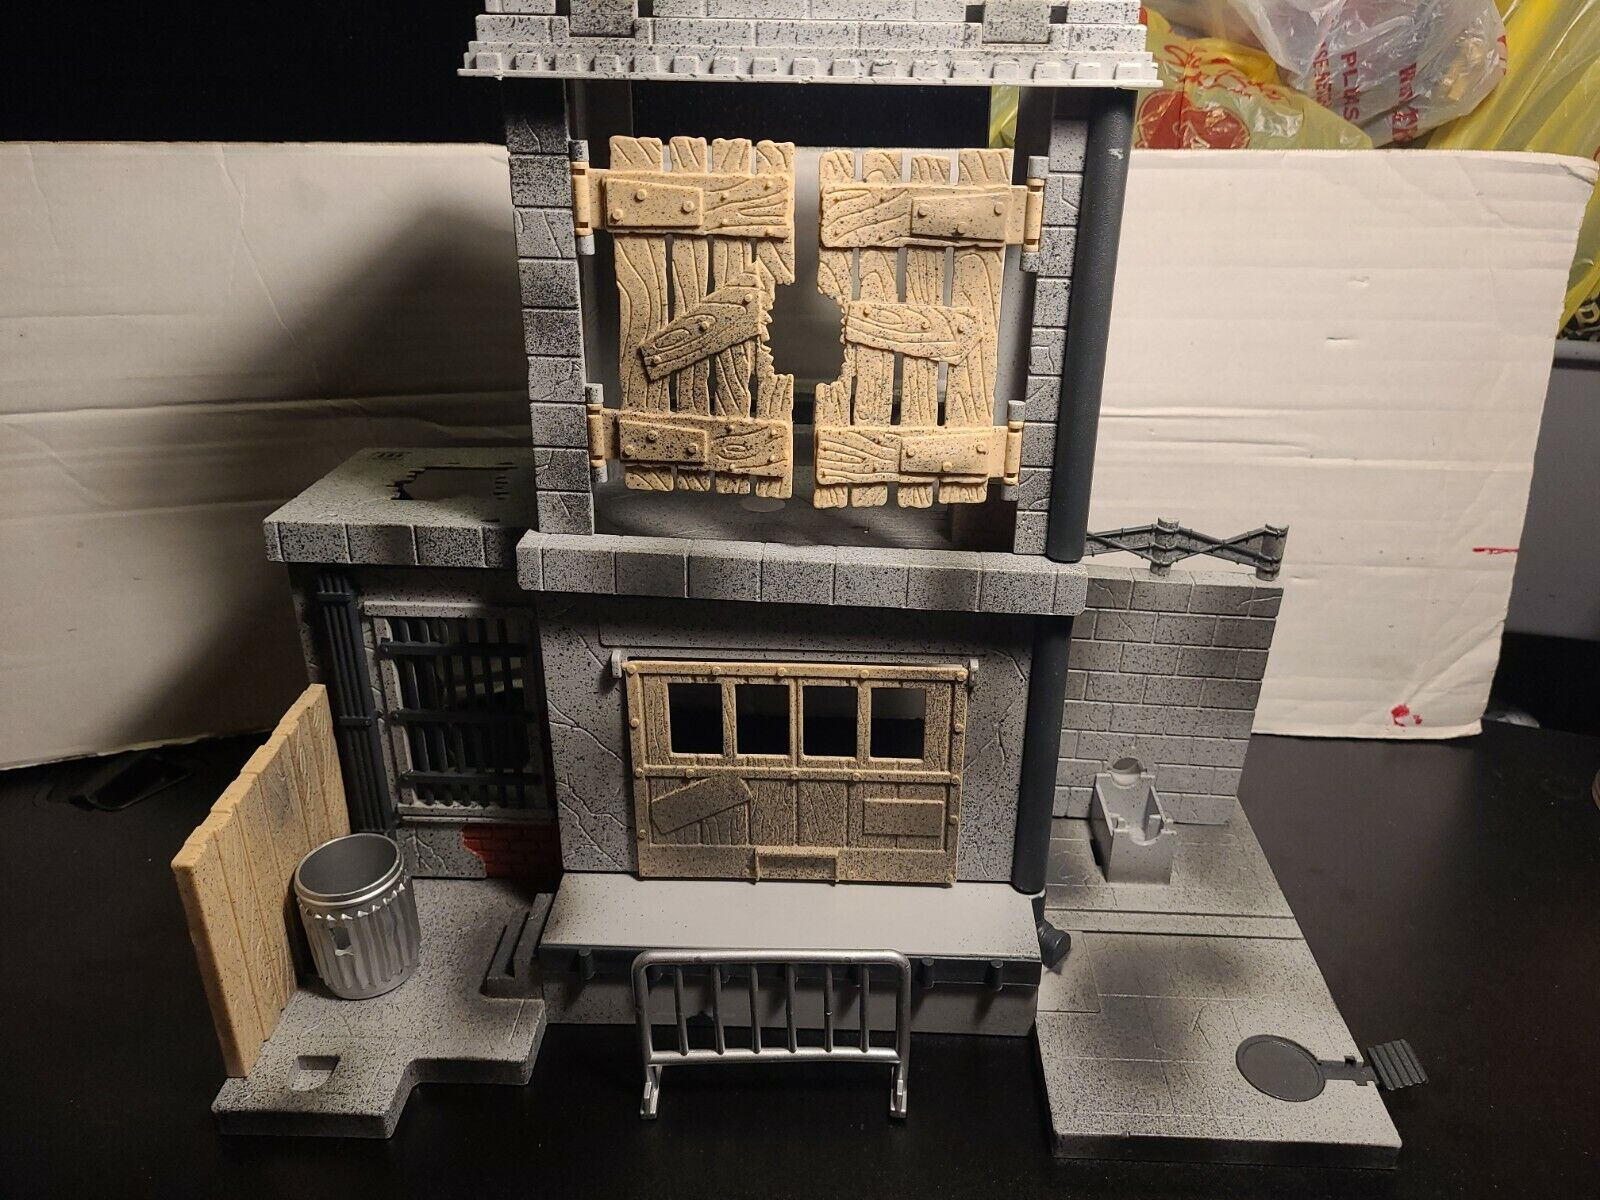 SPAWN ALLEY ACTION PLAY SET MCFARLANE TOYS INCOMPLETE PLAYSET  on eBay thumbnail